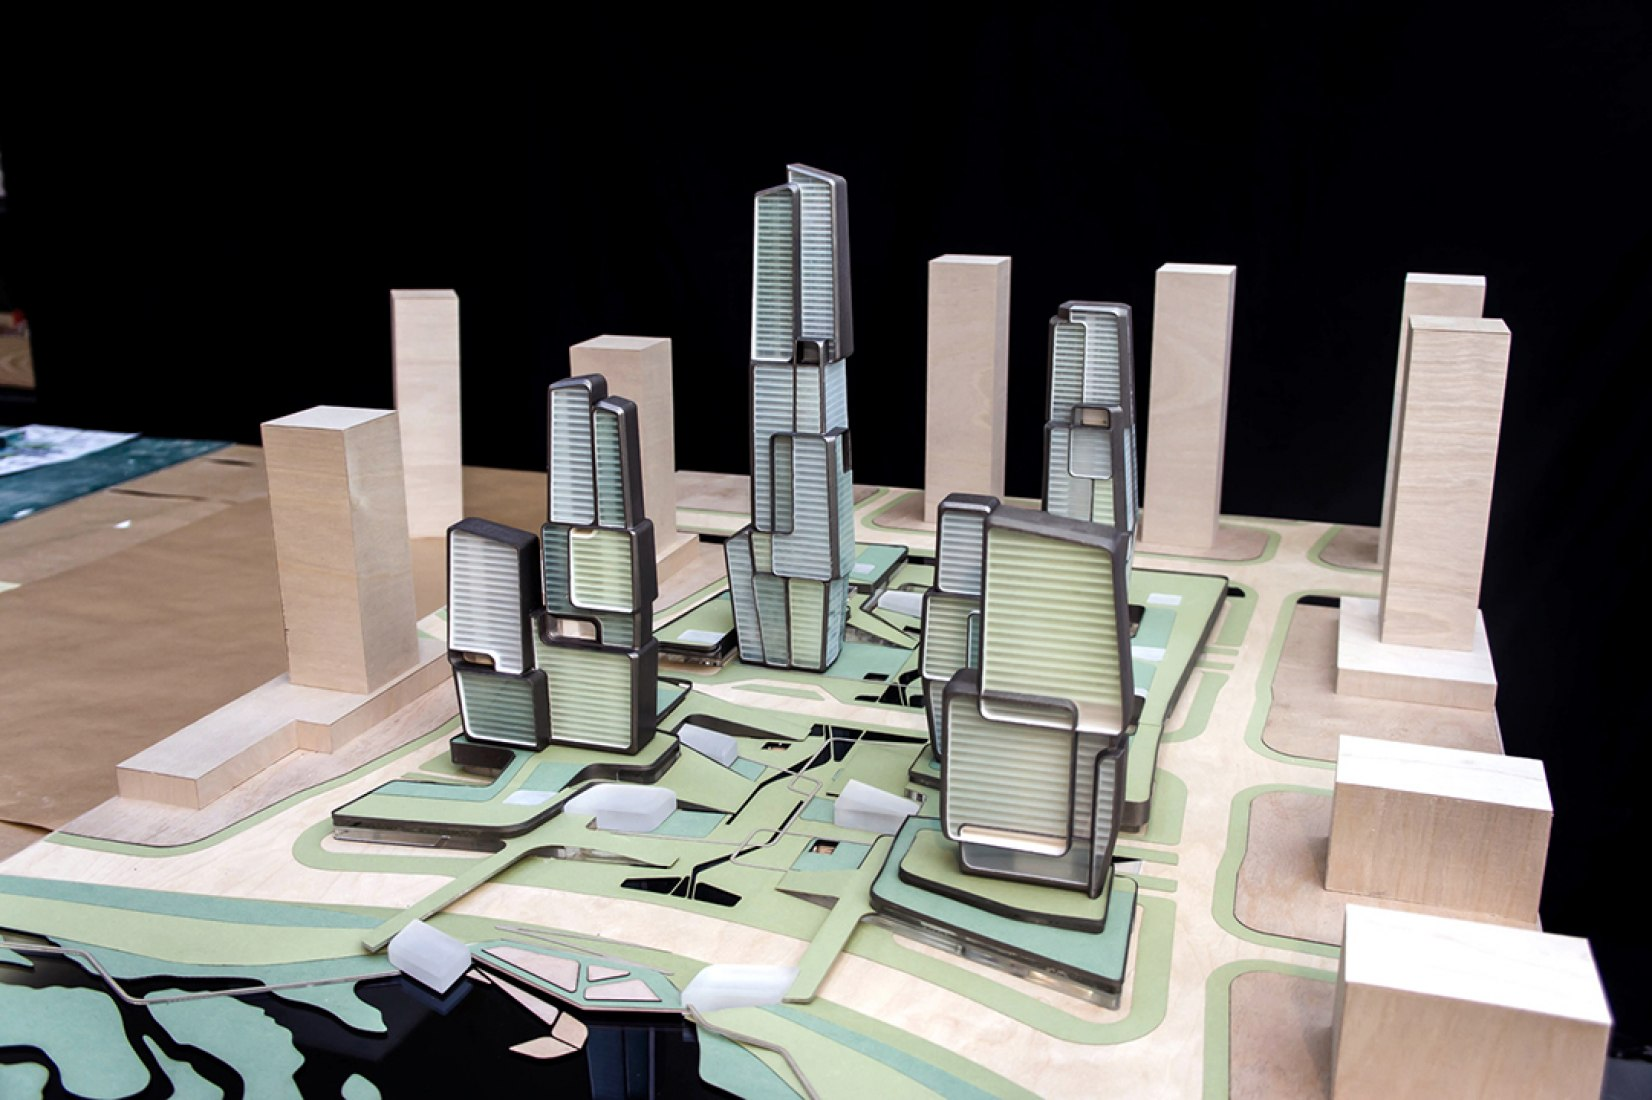 Overview model.